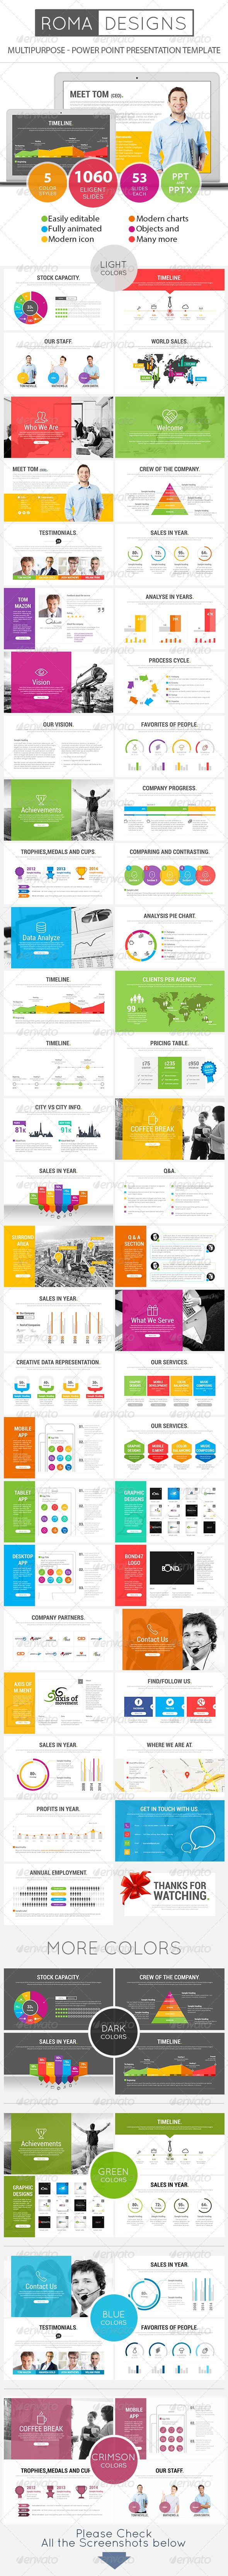 Roma - Power Point Presentation Template   http://graphicriver.net/item/roma-power-point-presentation-template/8228860?ref=damiamio       Roma – Multipurpose Power Point Presentation Template A creative, modern and slick presentation for multi-purpose corporate and Social Business Presentation. All slides are fully editable. Easy to change colors, text, photos etc. Perfect for businesses, corporate and personal use.  For any questions/queries or power point tips please send an email  Please…